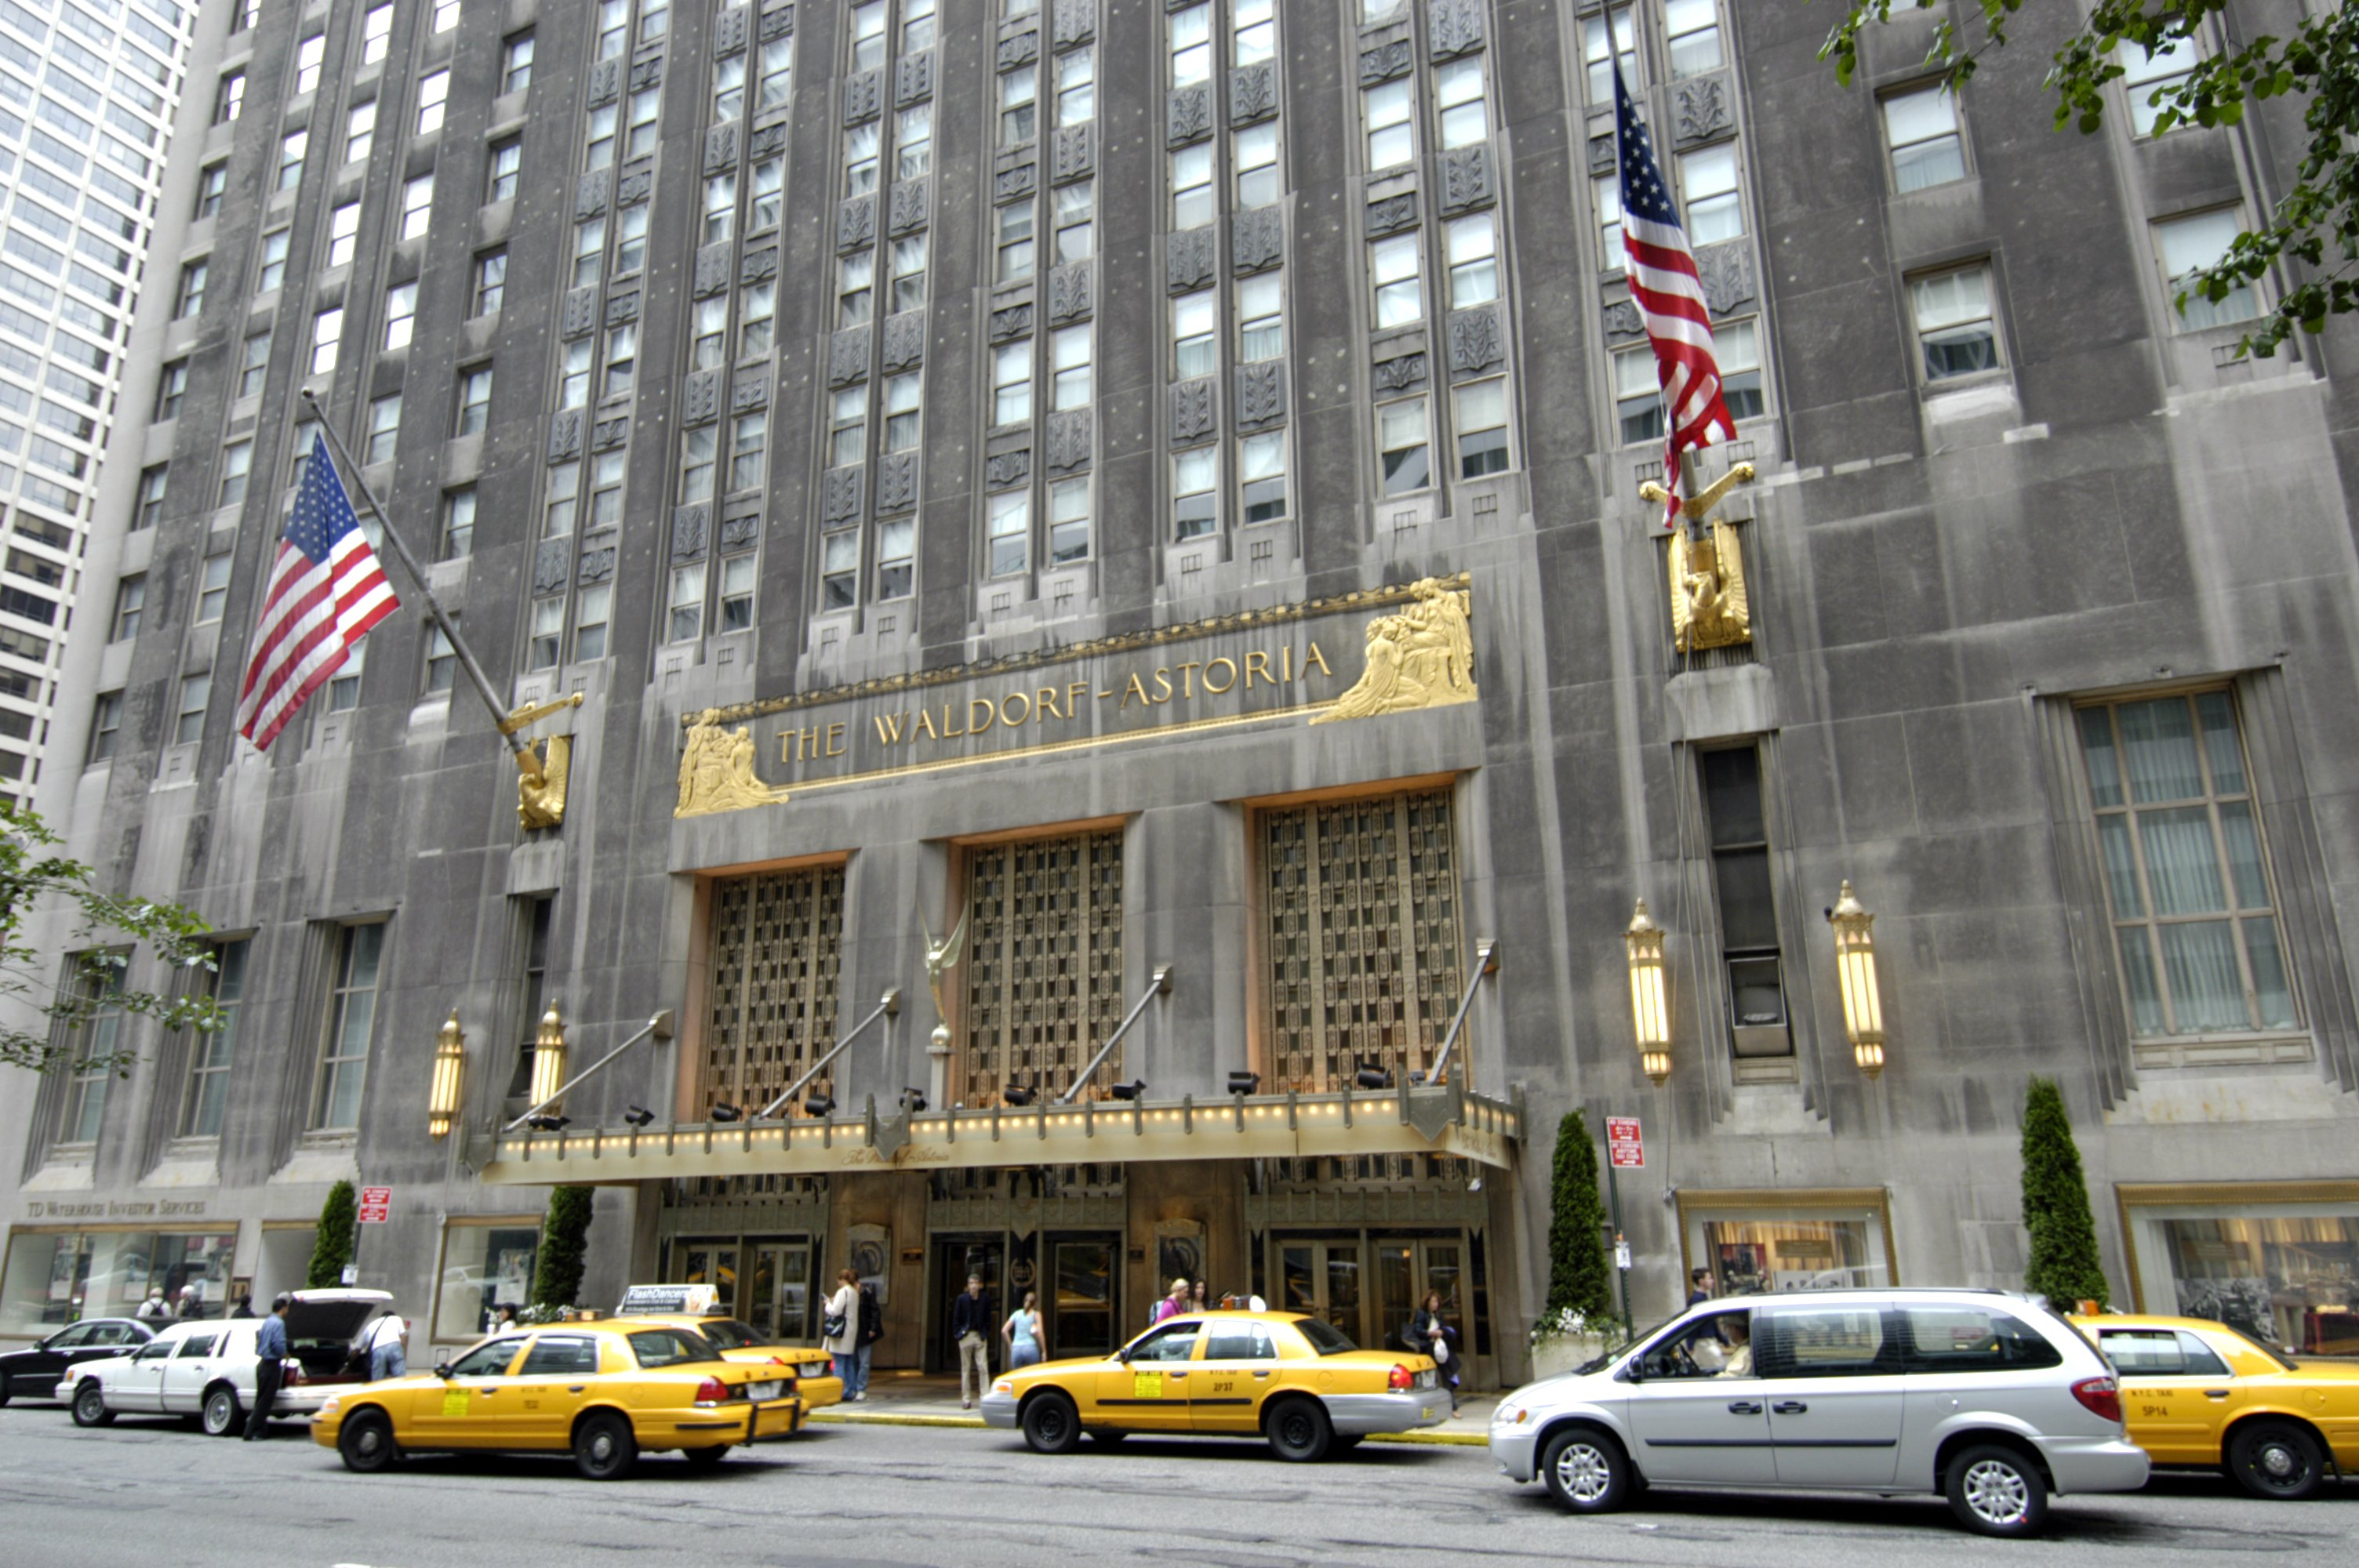 THE WALDORF ASTORIA HOTEL, PARK AVENUE, MANHATTAN, NEW YORK, AMERICAVARIOUS